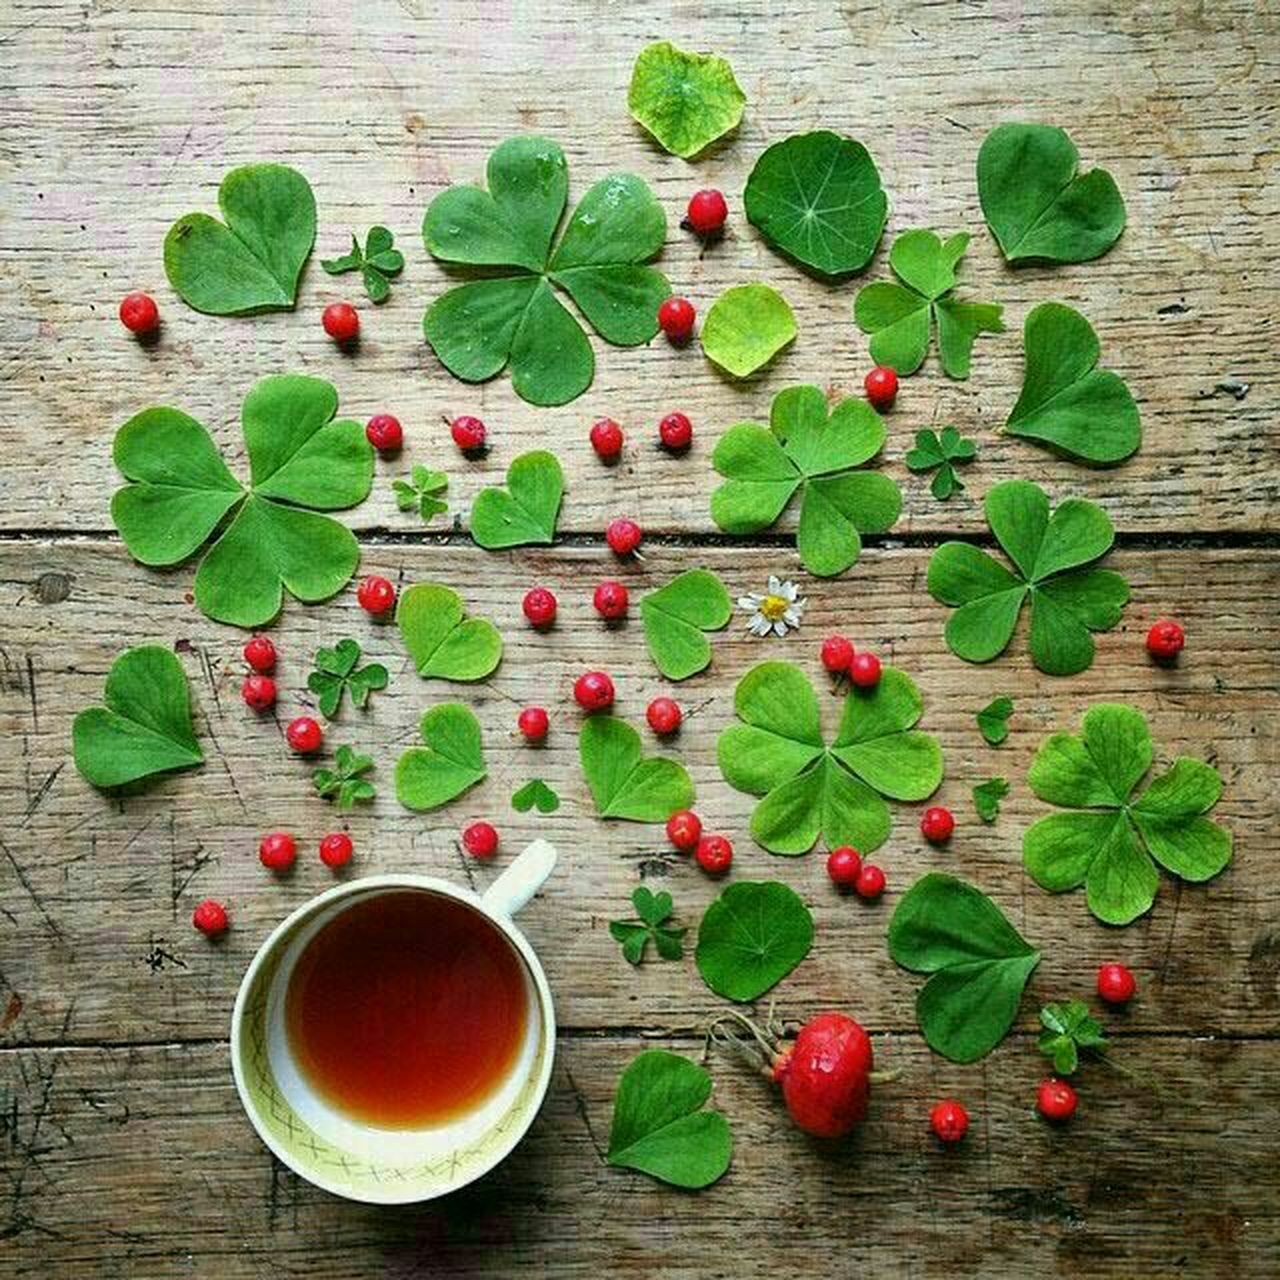 food and drink, leaf, freshness, healthy eating, fruit, drink, wood - material, green color, food, table, no people, refreshment, indoors, red, directly above, plant, tea - hot drink, branch, flower, day, close-up, nature, ready-to-eat